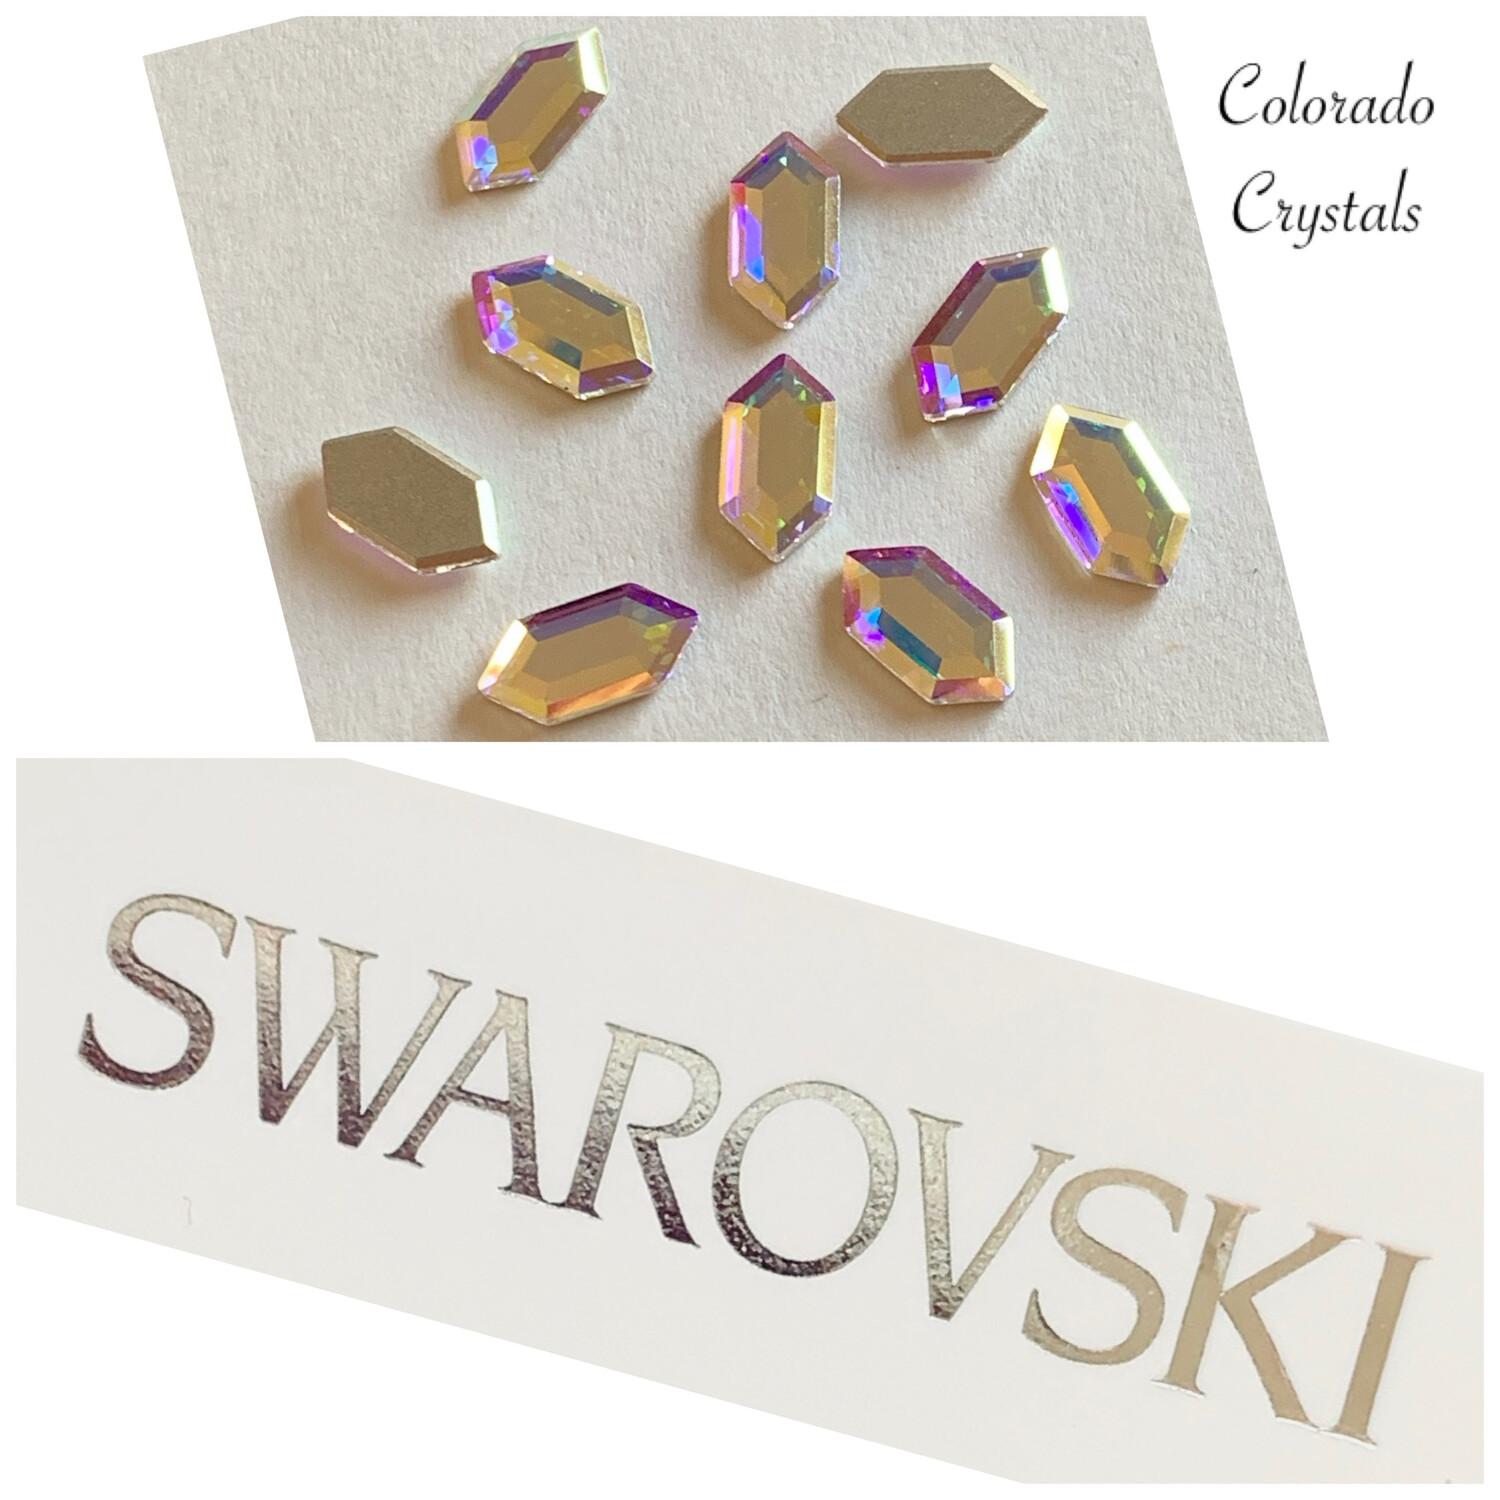 Elongated Hexagon FB 10pc Crystal AB 2776 11X5.6 mm Swarovski